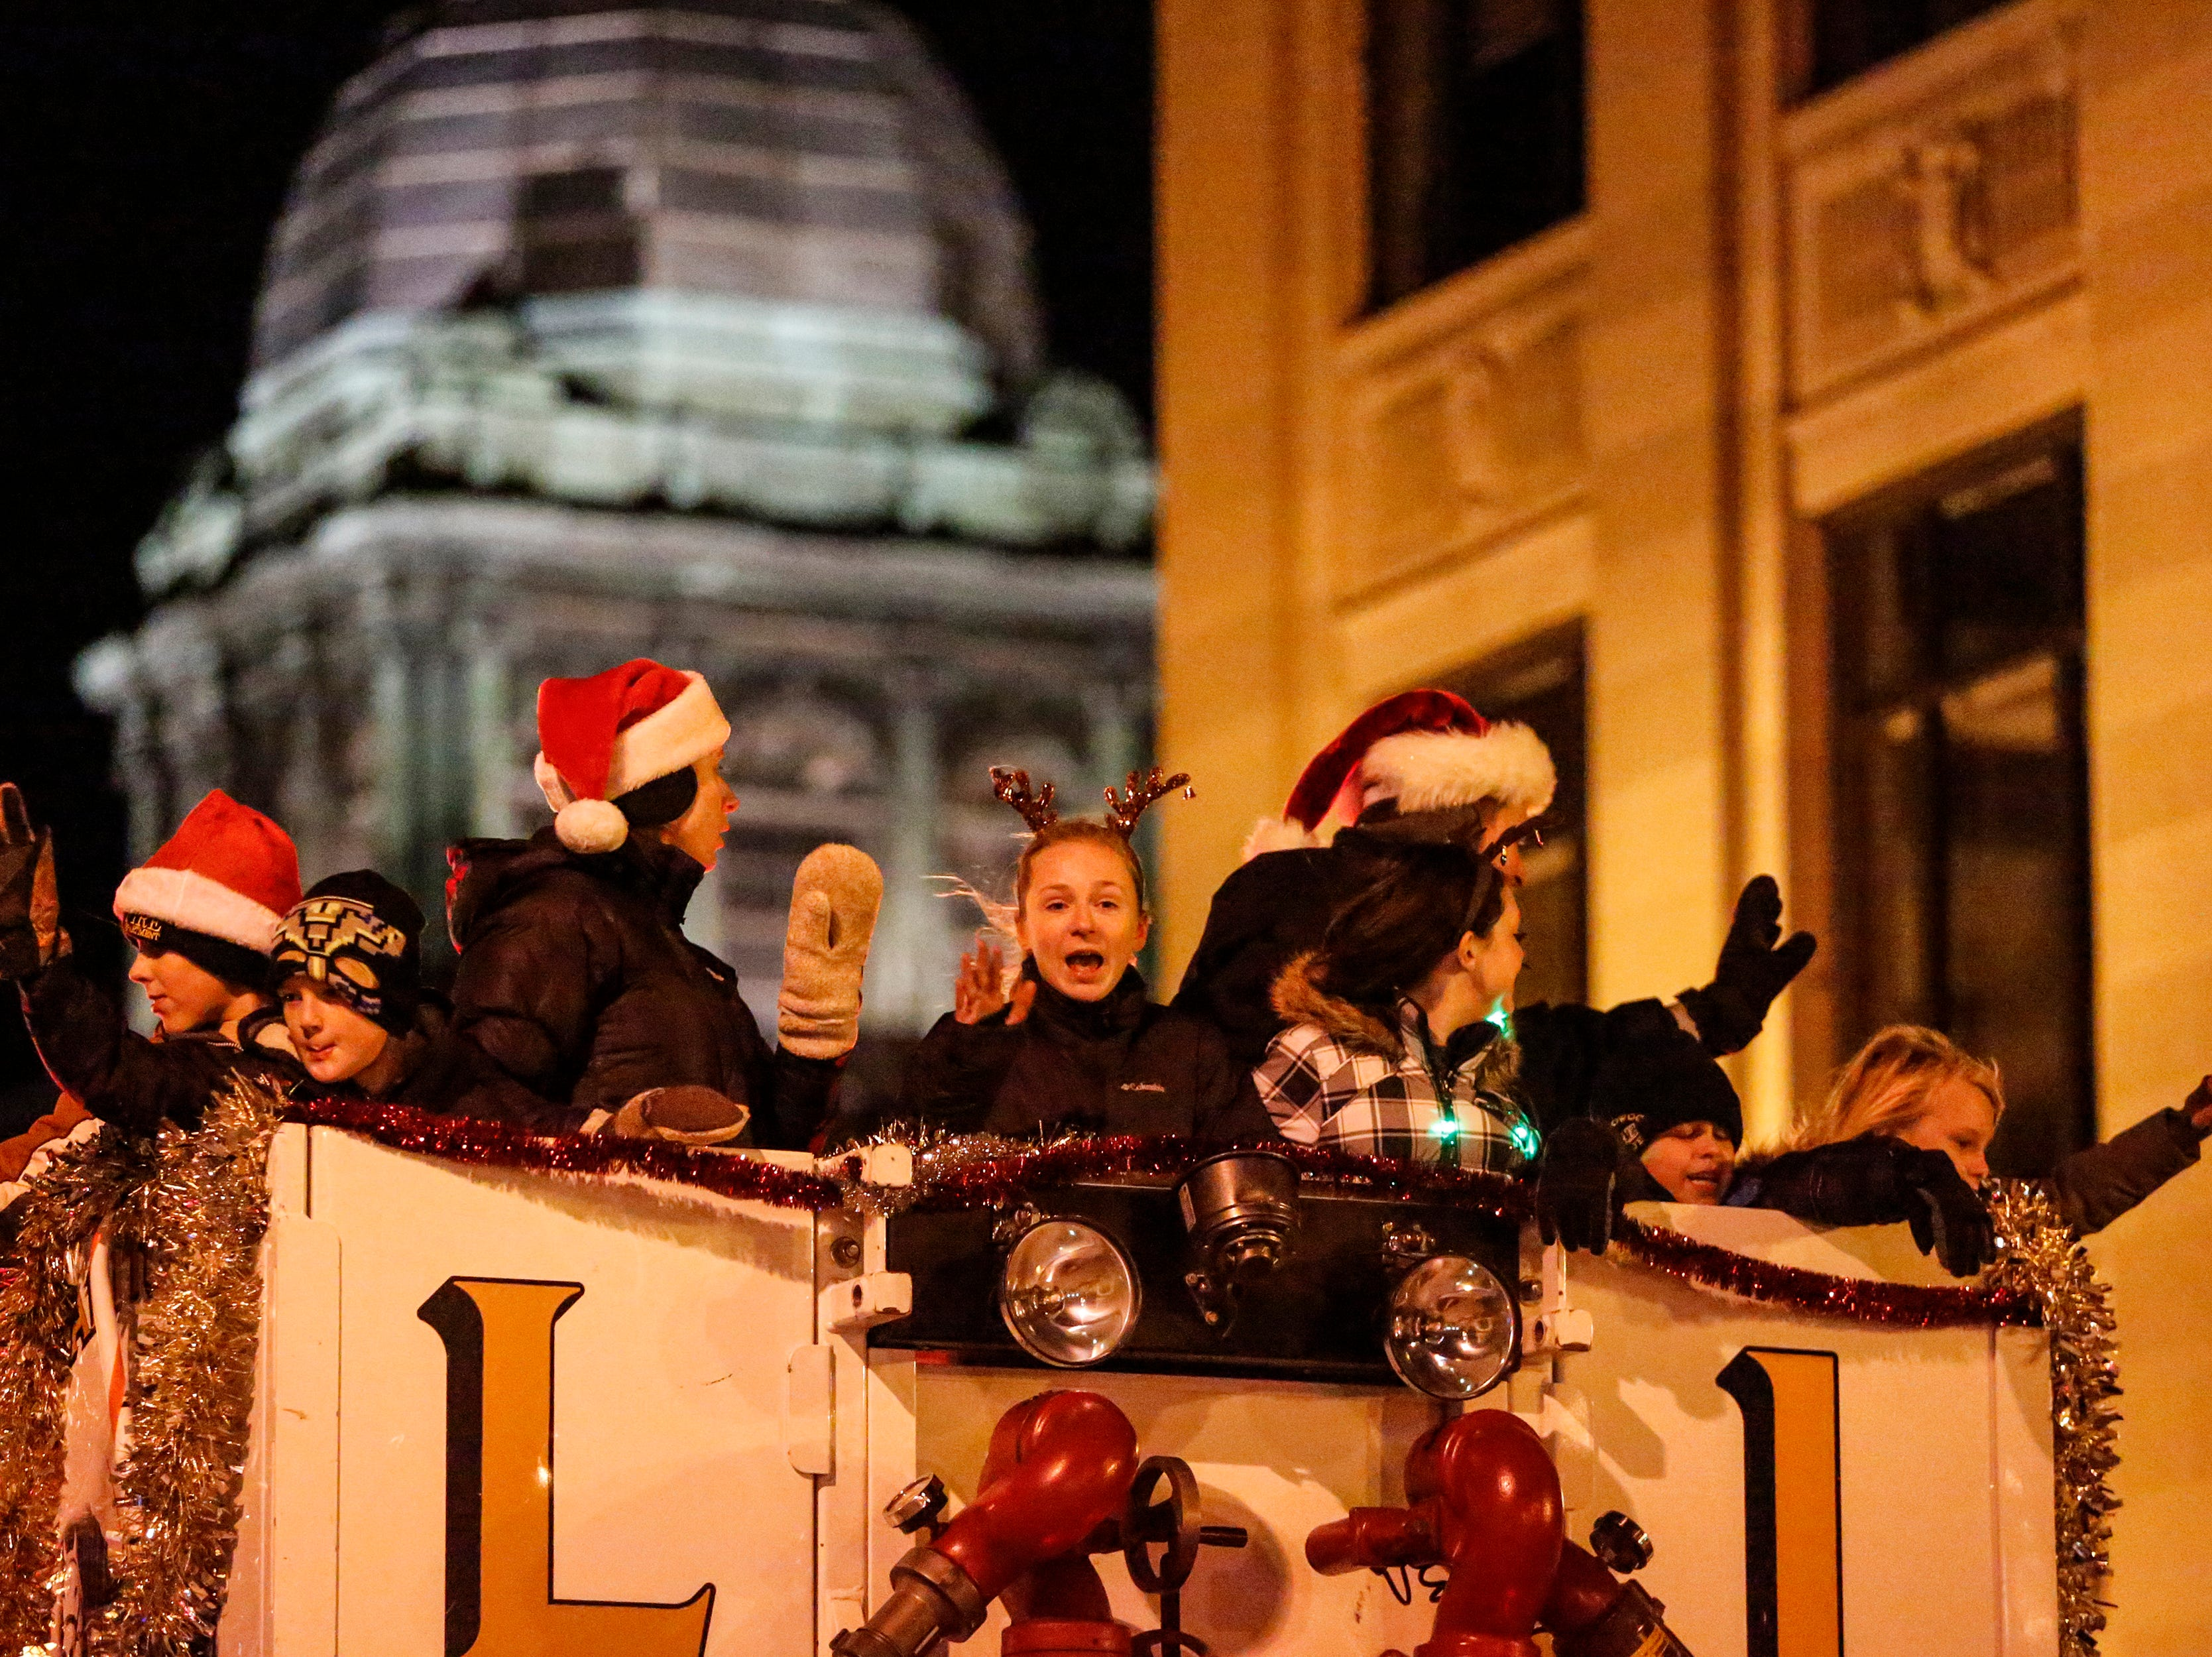 """Families waive to the crowd from the Manitowoc Fire Department bucket lift during the 30th Annual Lakeshore Holiday Parade Wednesday, November 21, 2018, in Manitowoc, Wis. This year's theme was """"Christmas Through the Decades."""" Joshua Clark/USA TODAY NETWORK-Wisconsin"""